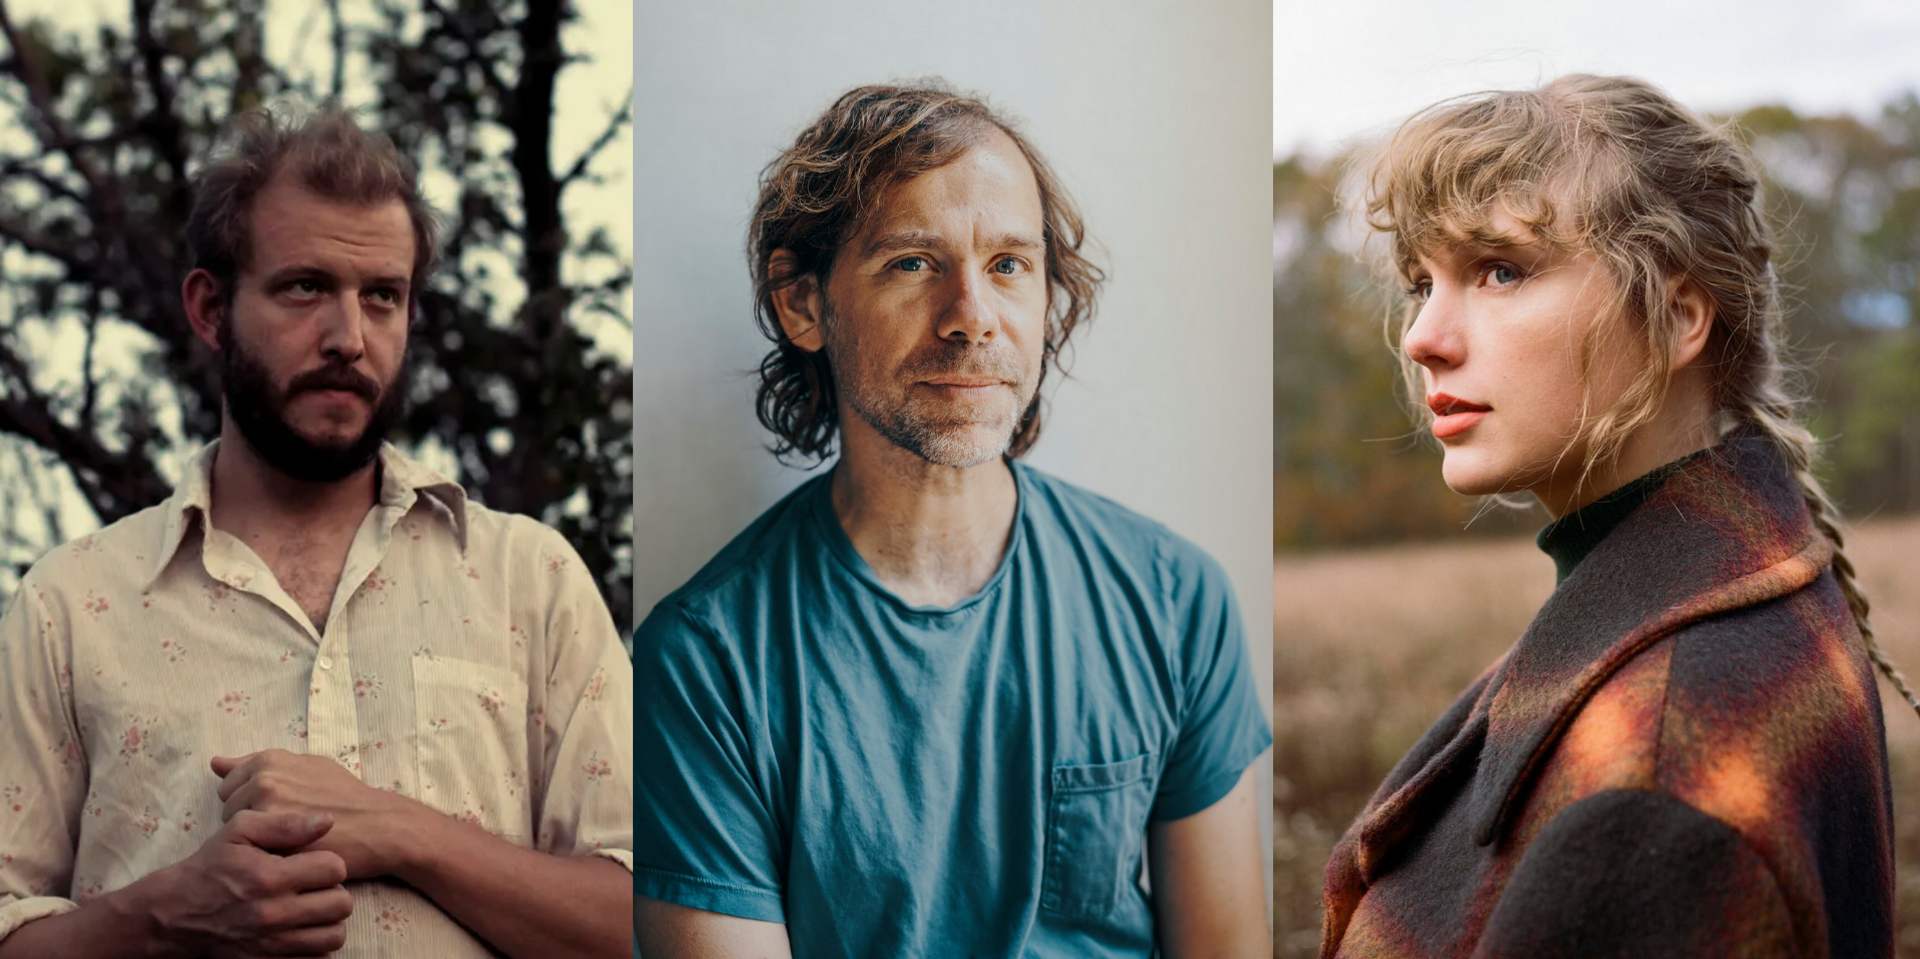 Big Red Machine's Aaron Dessner and Justin Vernon reunite with Taylor Swift in 'Renegade' - watch